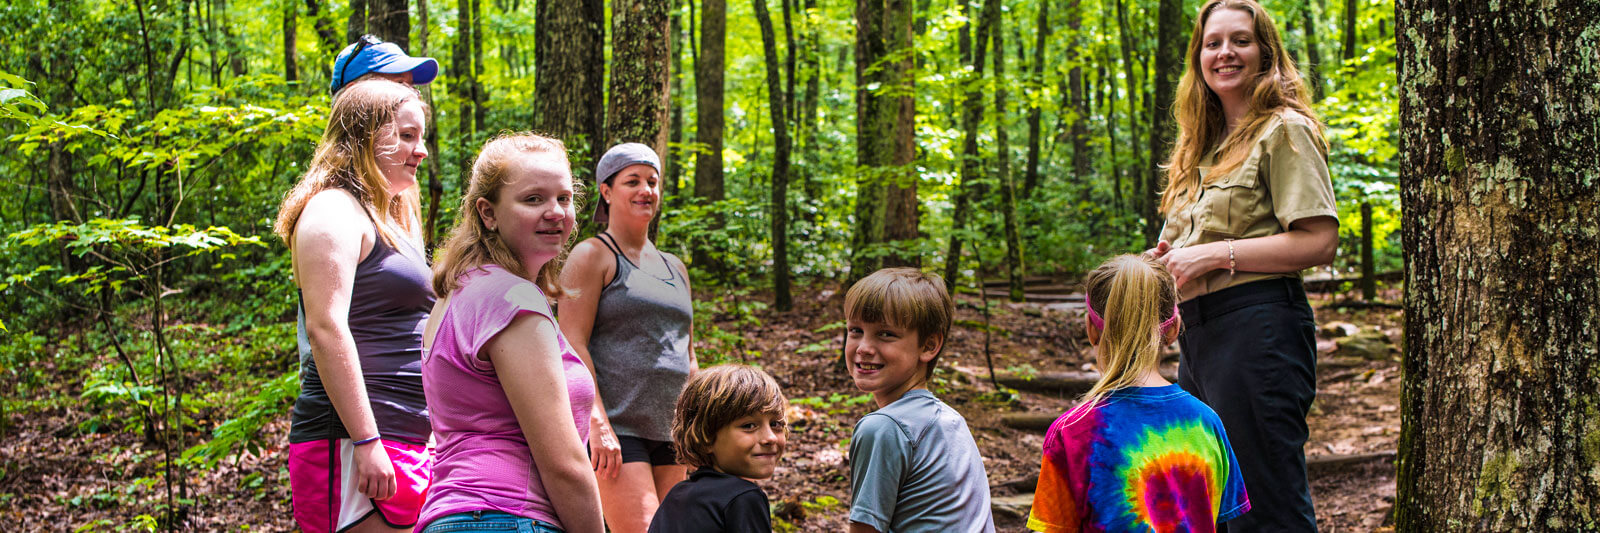 Amicalola Falls Adventure Lodge Adventures Guided Hikes 1